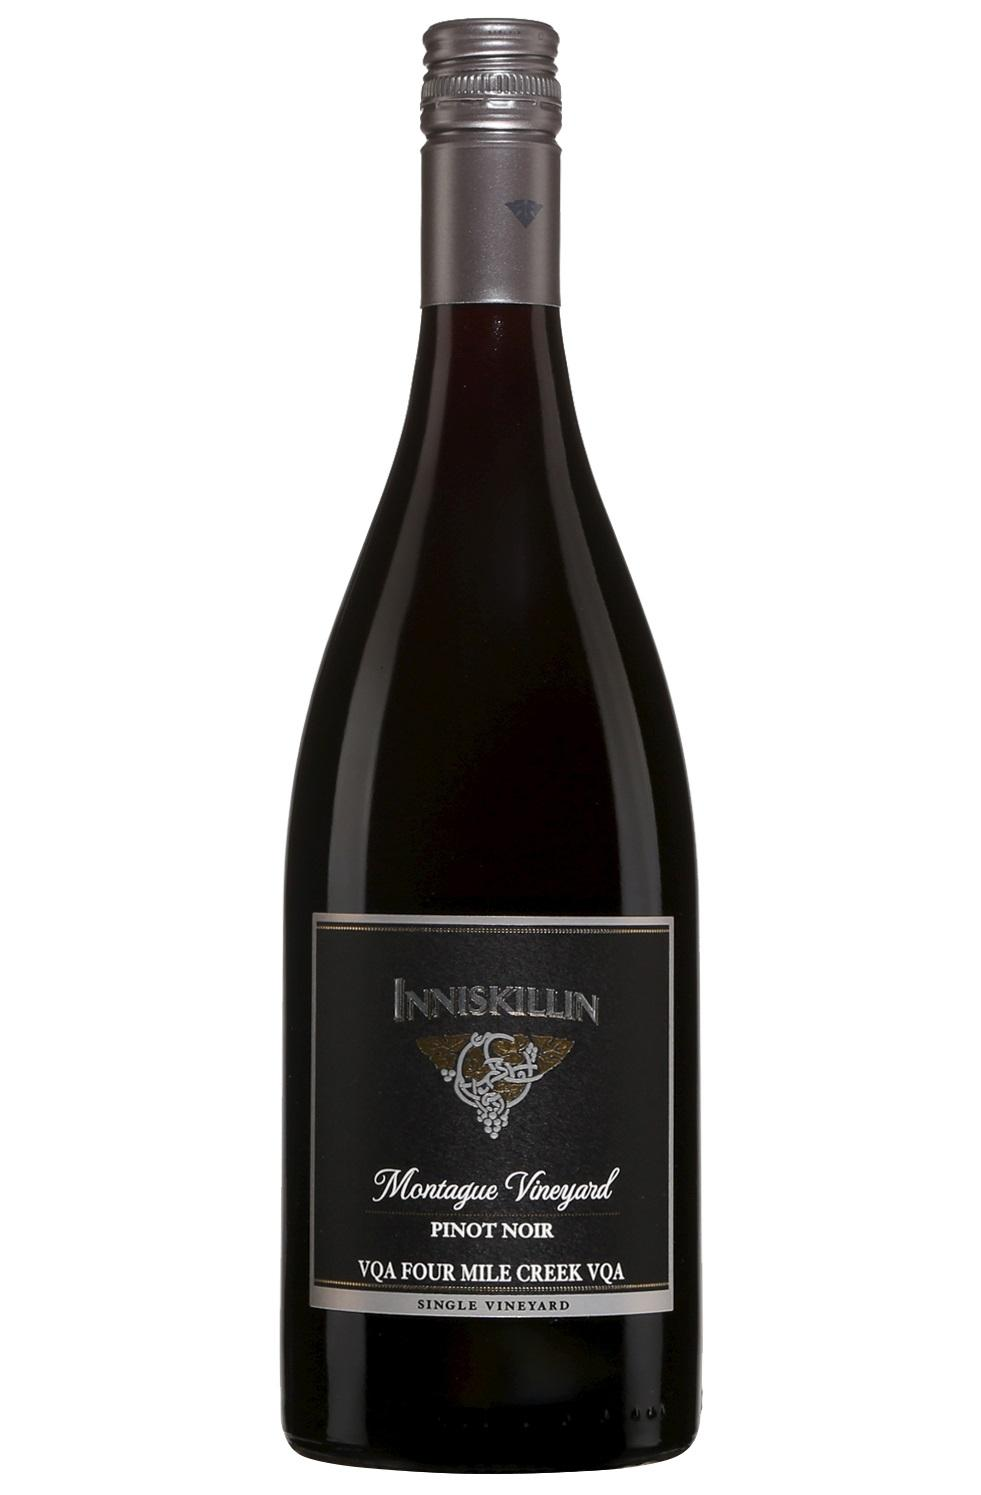 Inniskillin Montague Vineyard Pinot Noir Four Mile Creek 201831,75 $ • 14503522 • 14 % • 4,1 g/l